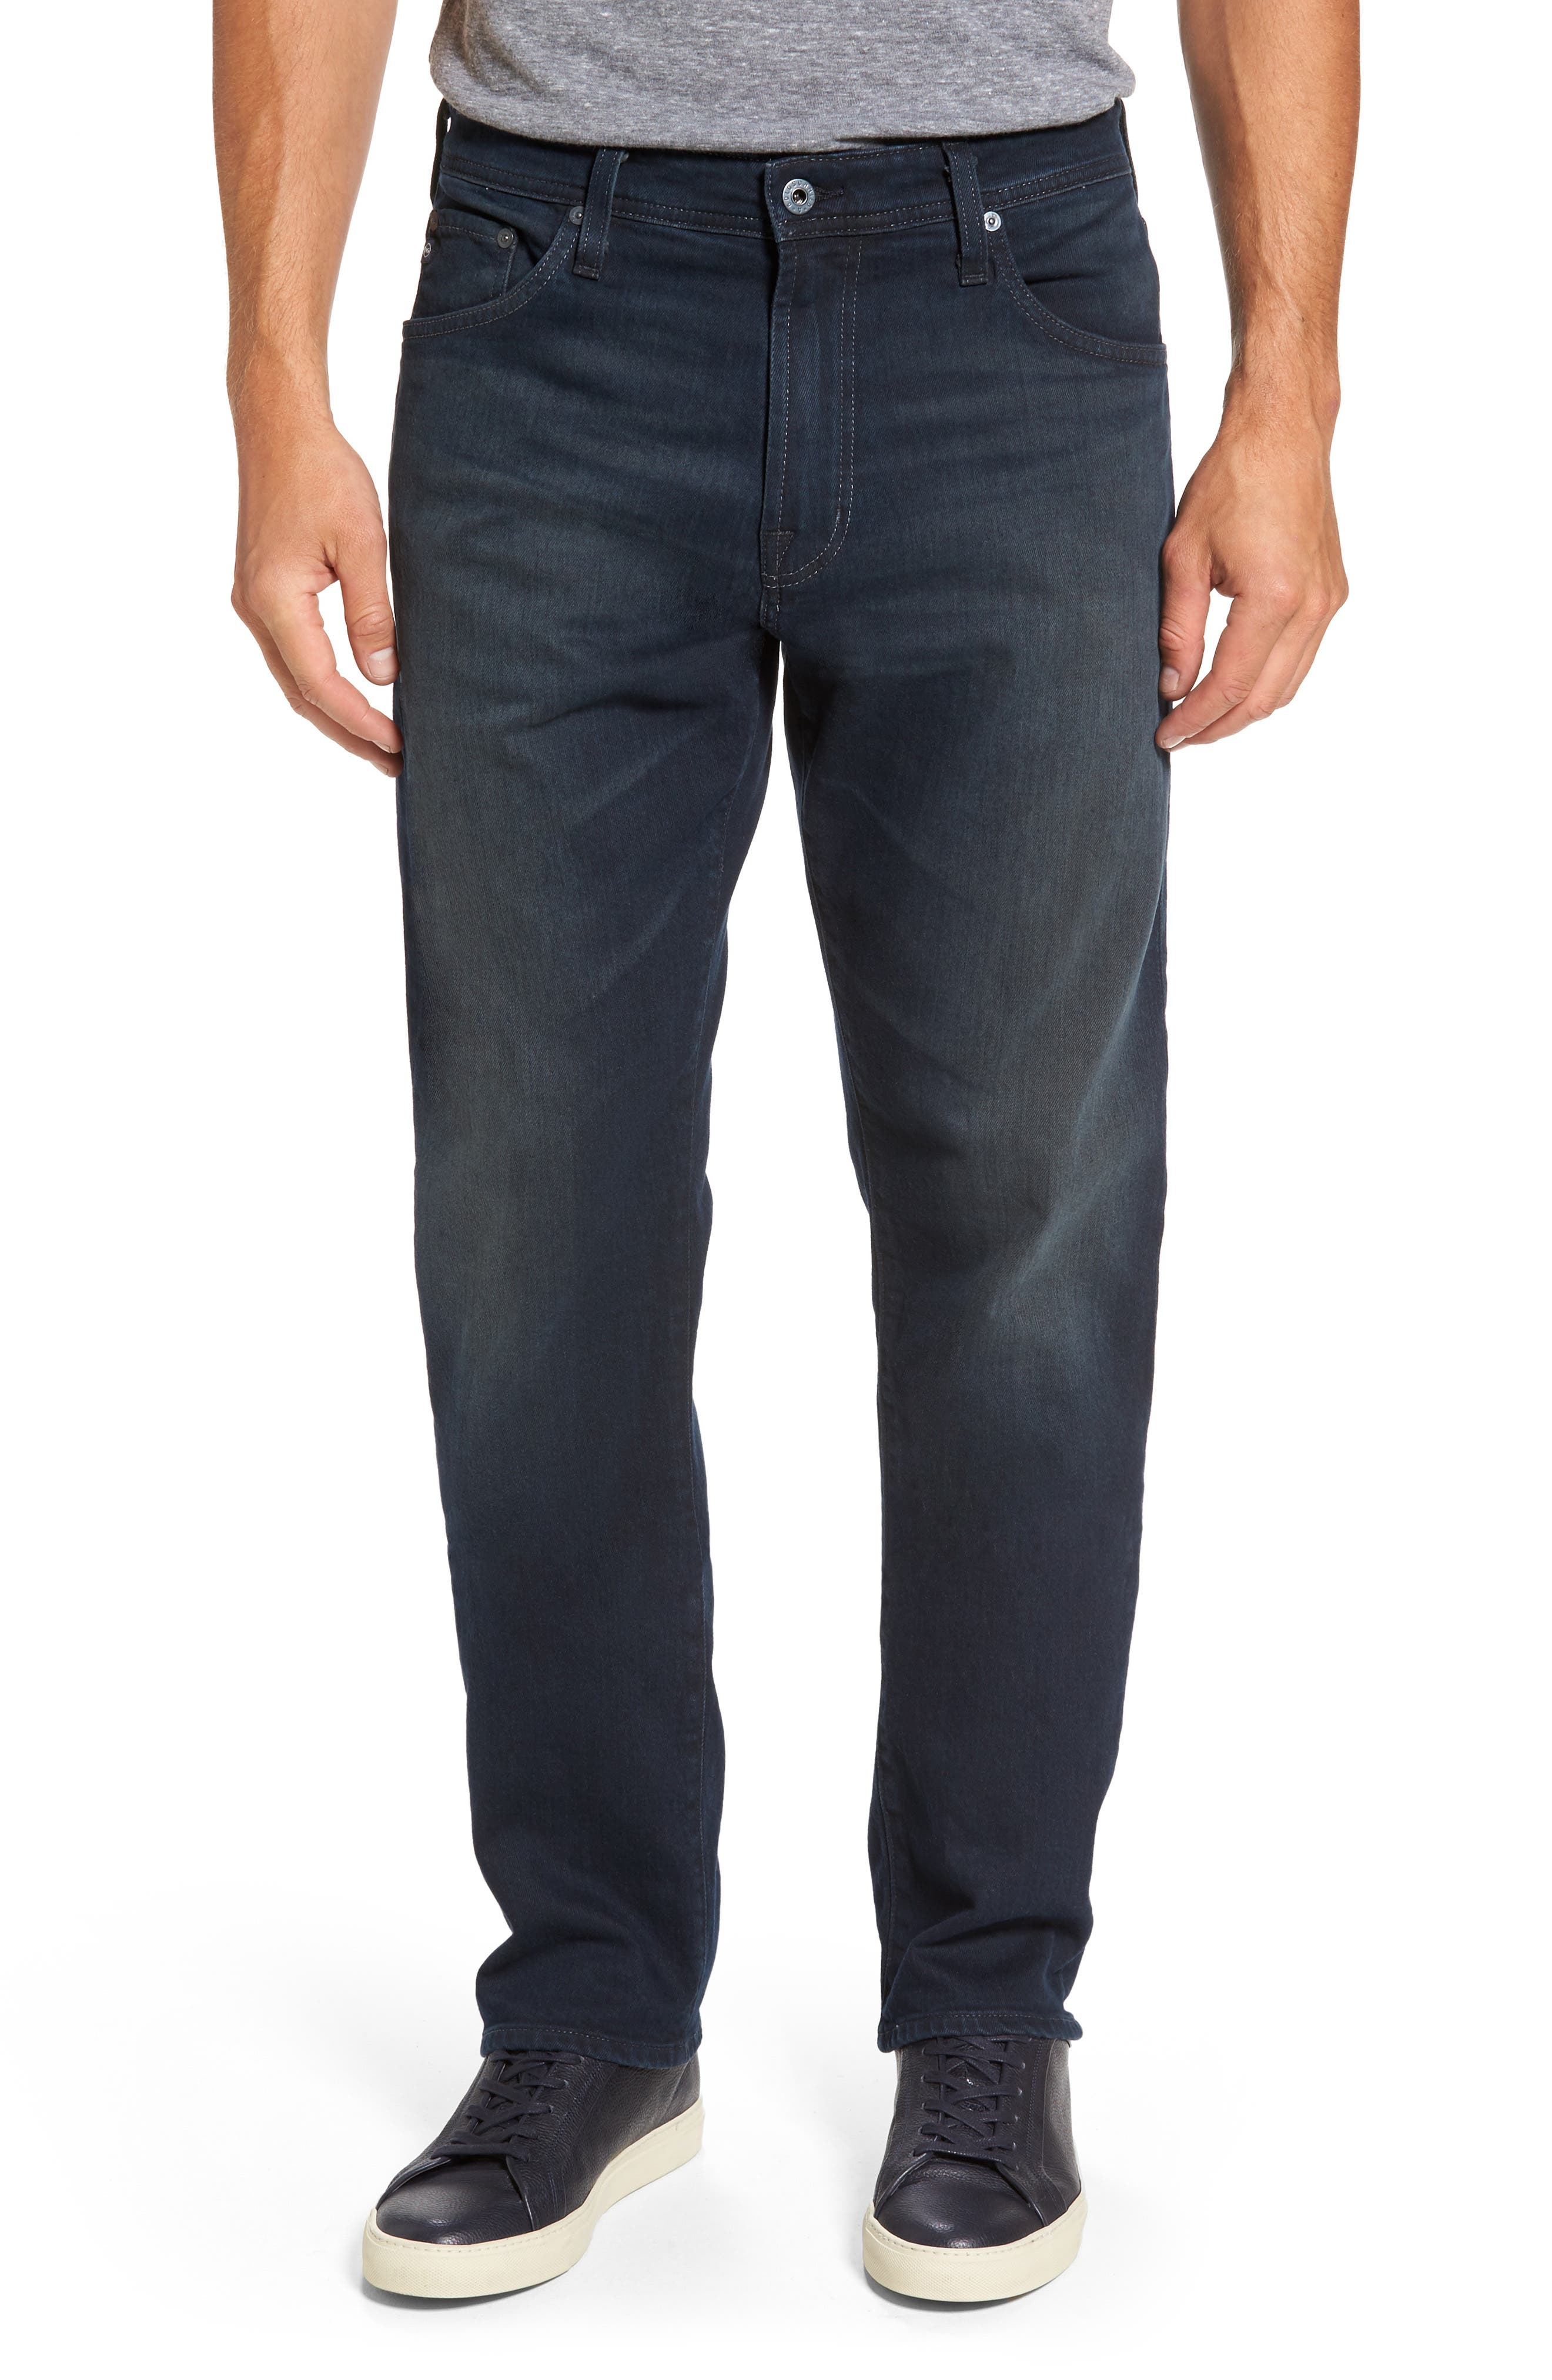 Ives Straight Fit Jeans,                             Main thumbnail 1, color,                             Blue Smolder